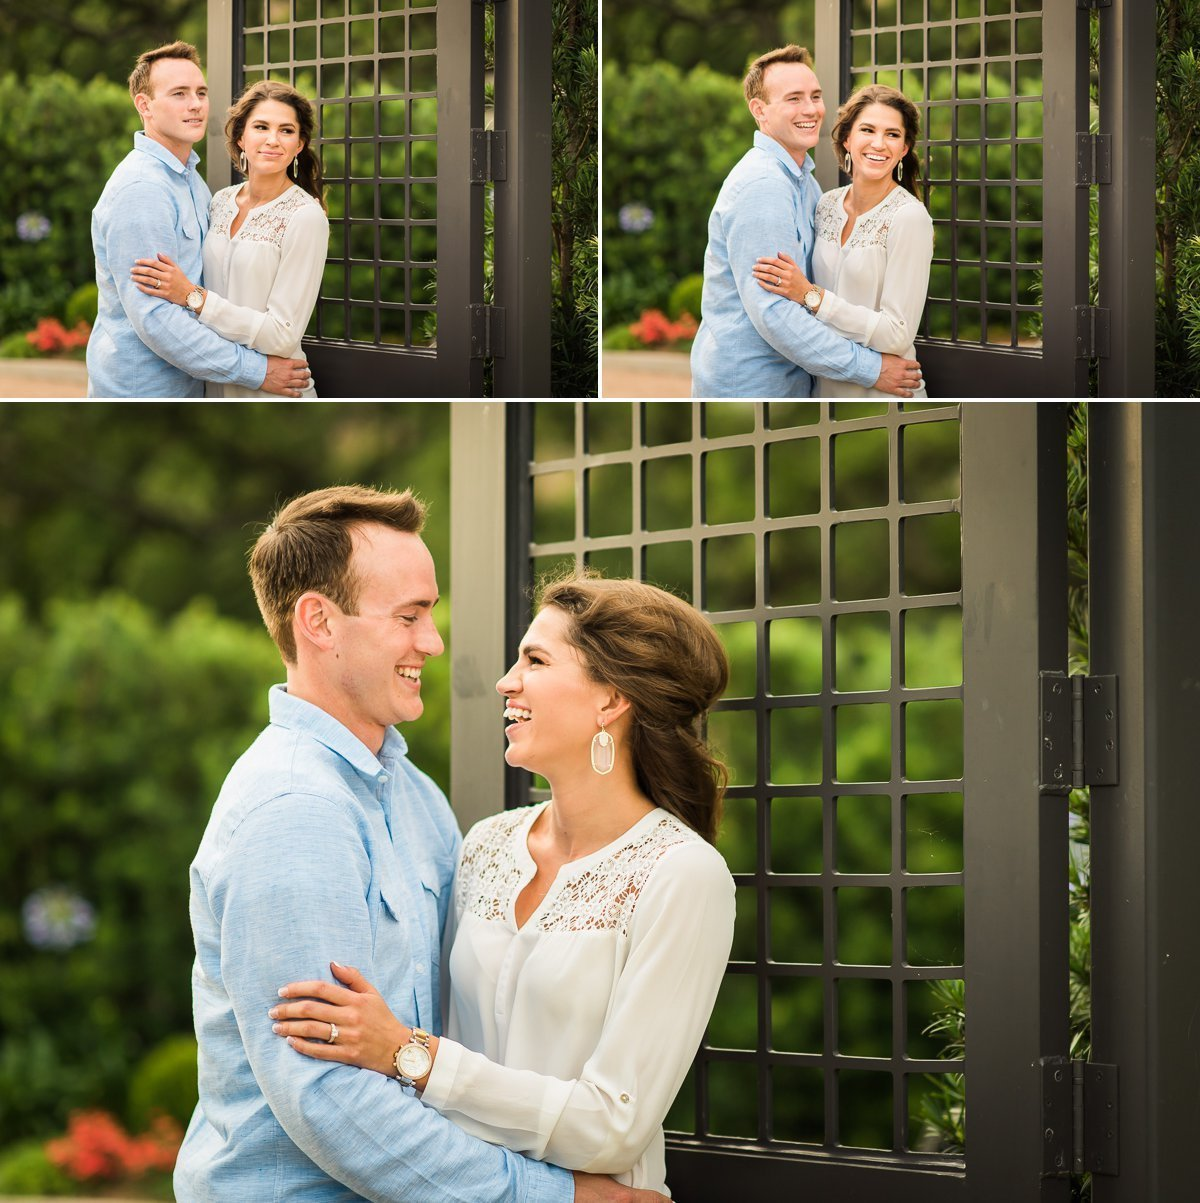 McGovern Centennial Garden Engagement Session